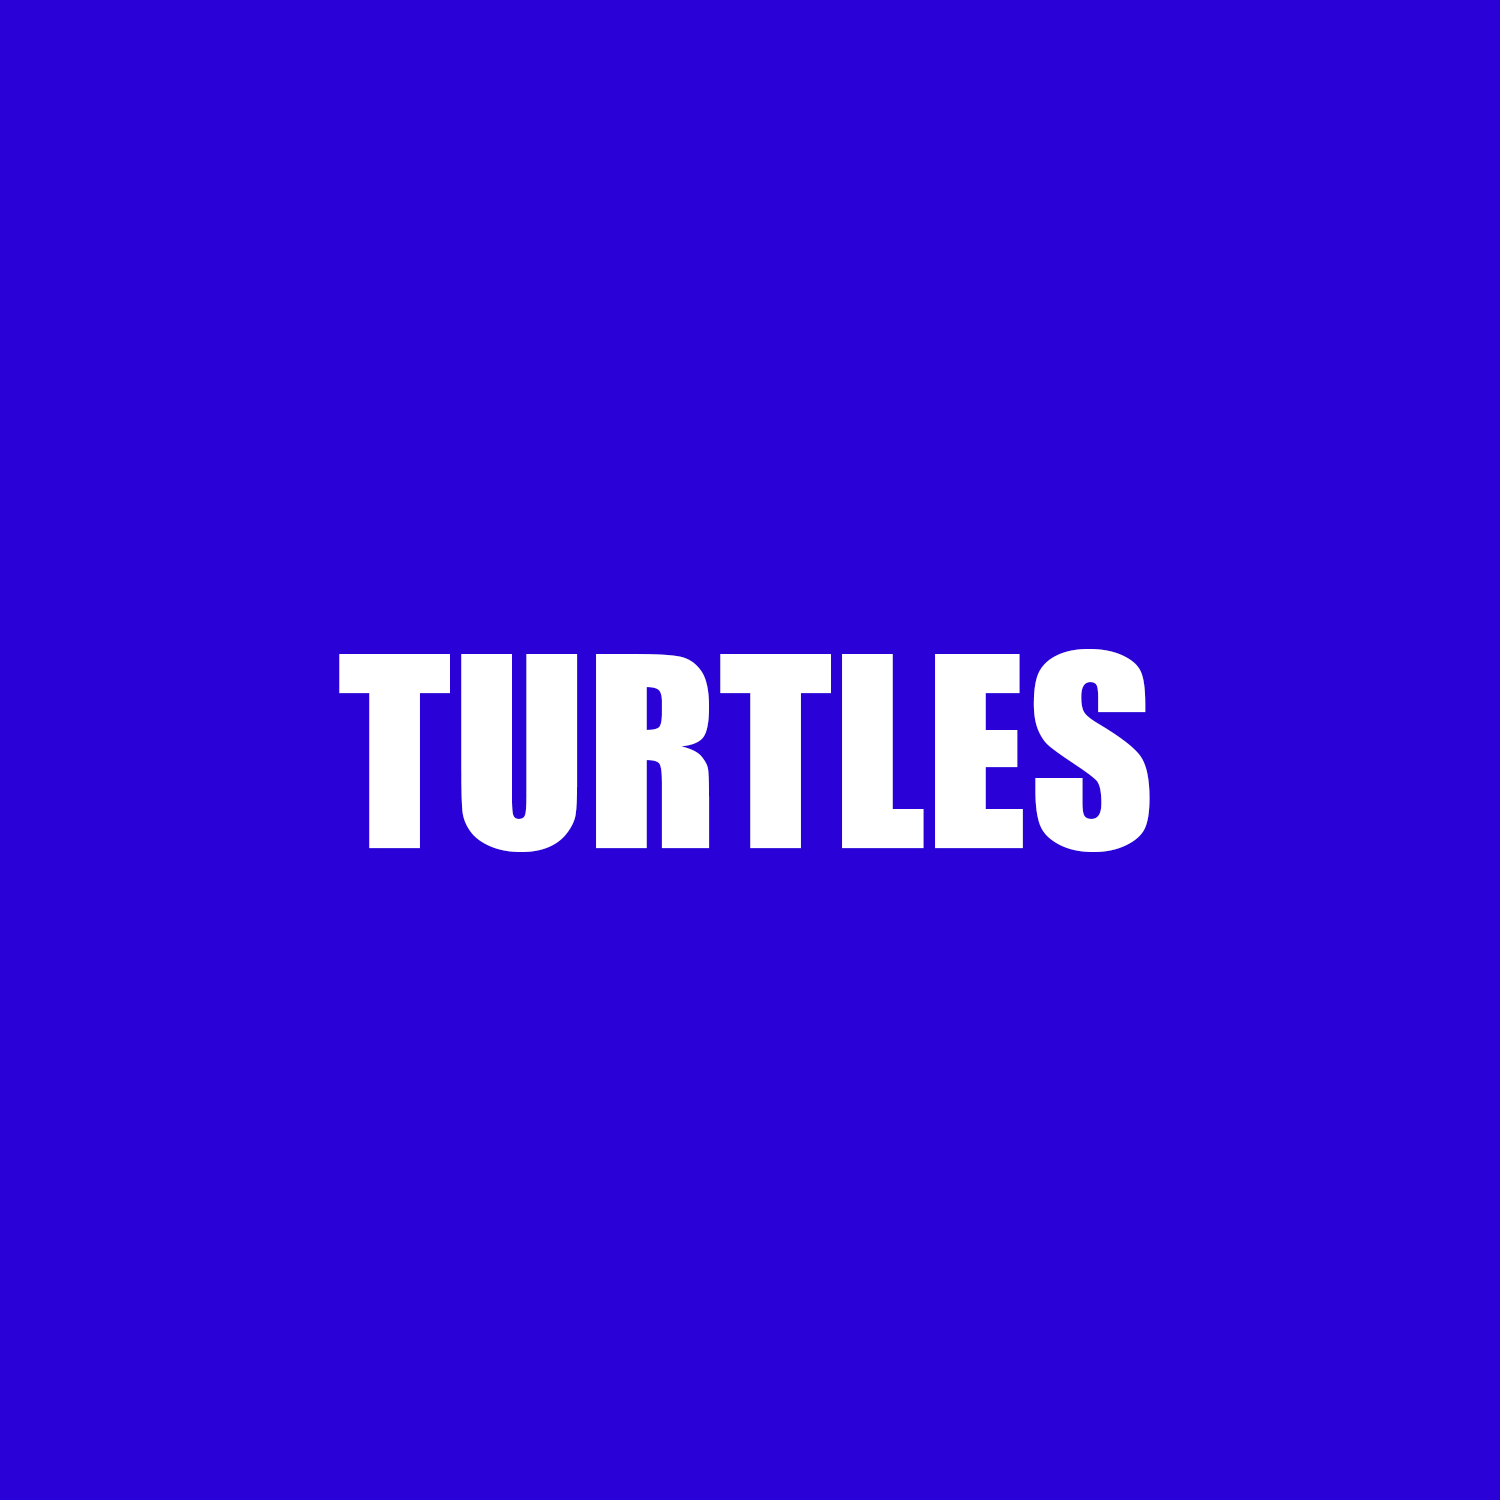 turtles.png